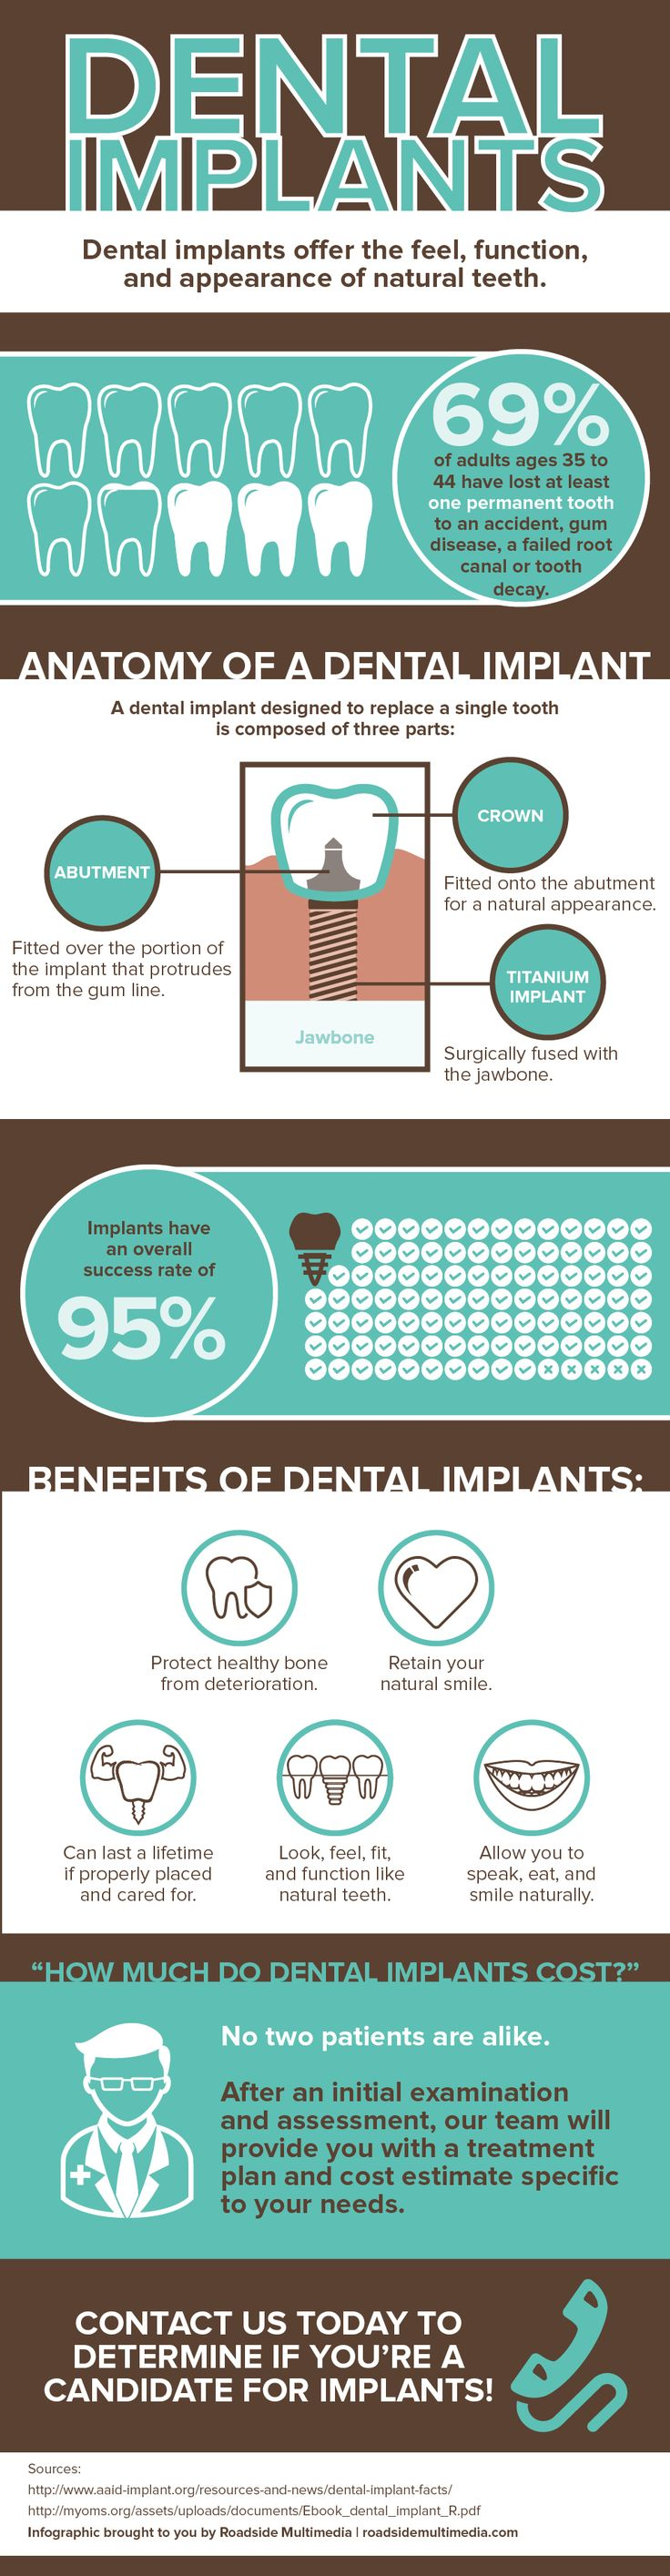 Why dental implants are the best option for missing teeth | Rolling Hills Dental | Dental in Maryville Rolling Hills Dental 2625 Old Niles Ferry Rd. Maryville, TN 37803 Phone: (865) 983-4444